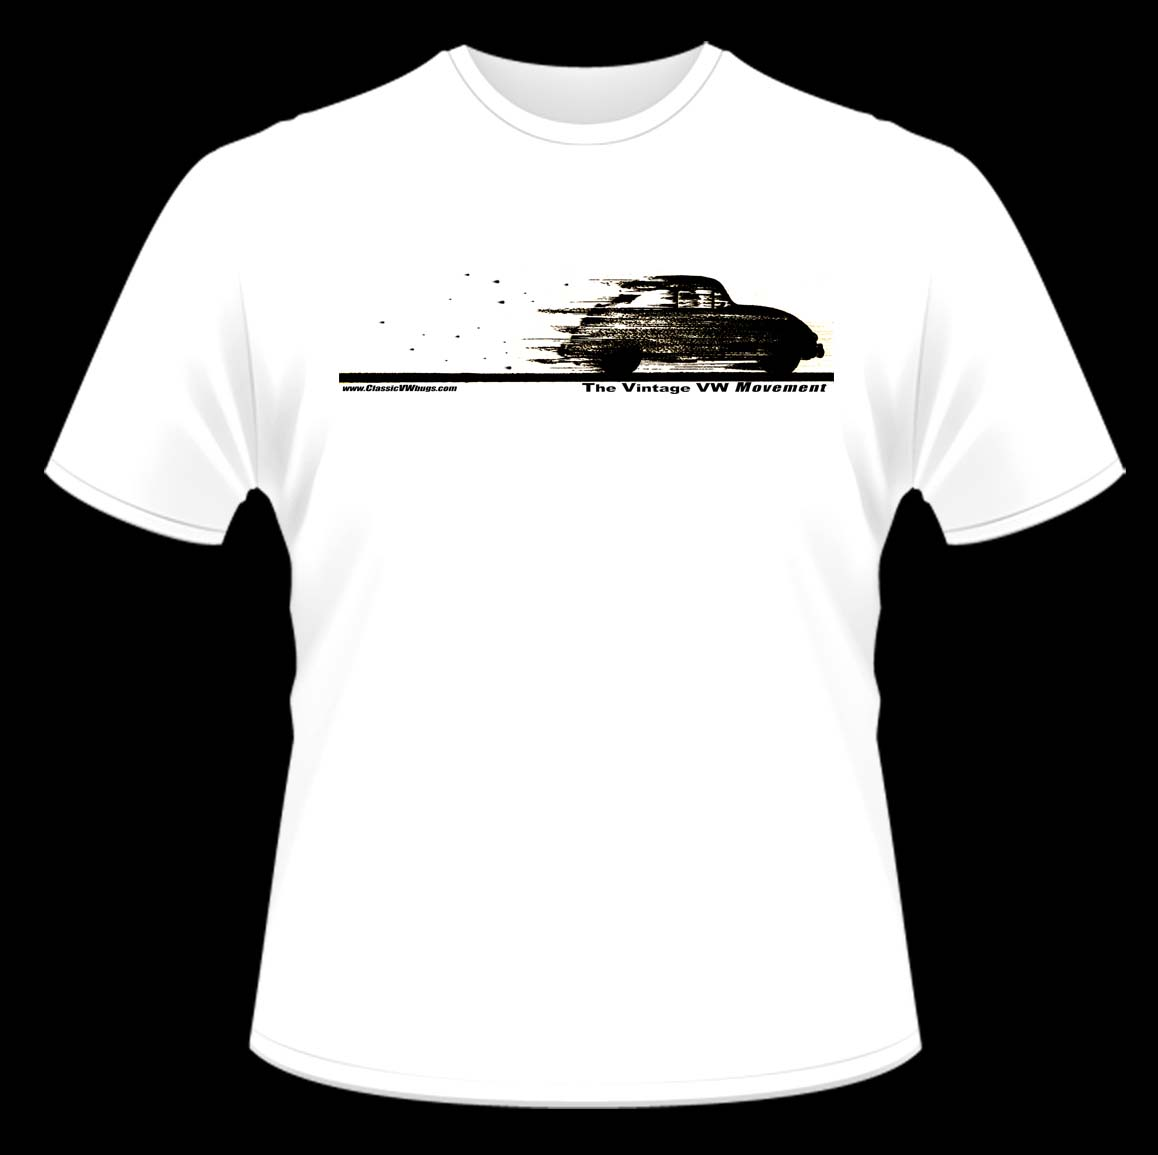 classic vw bugs t shirt ideas round 2 this time on white classic vw beetles bugs. Black Bedroom Furniture Sets. Home Design Ideas